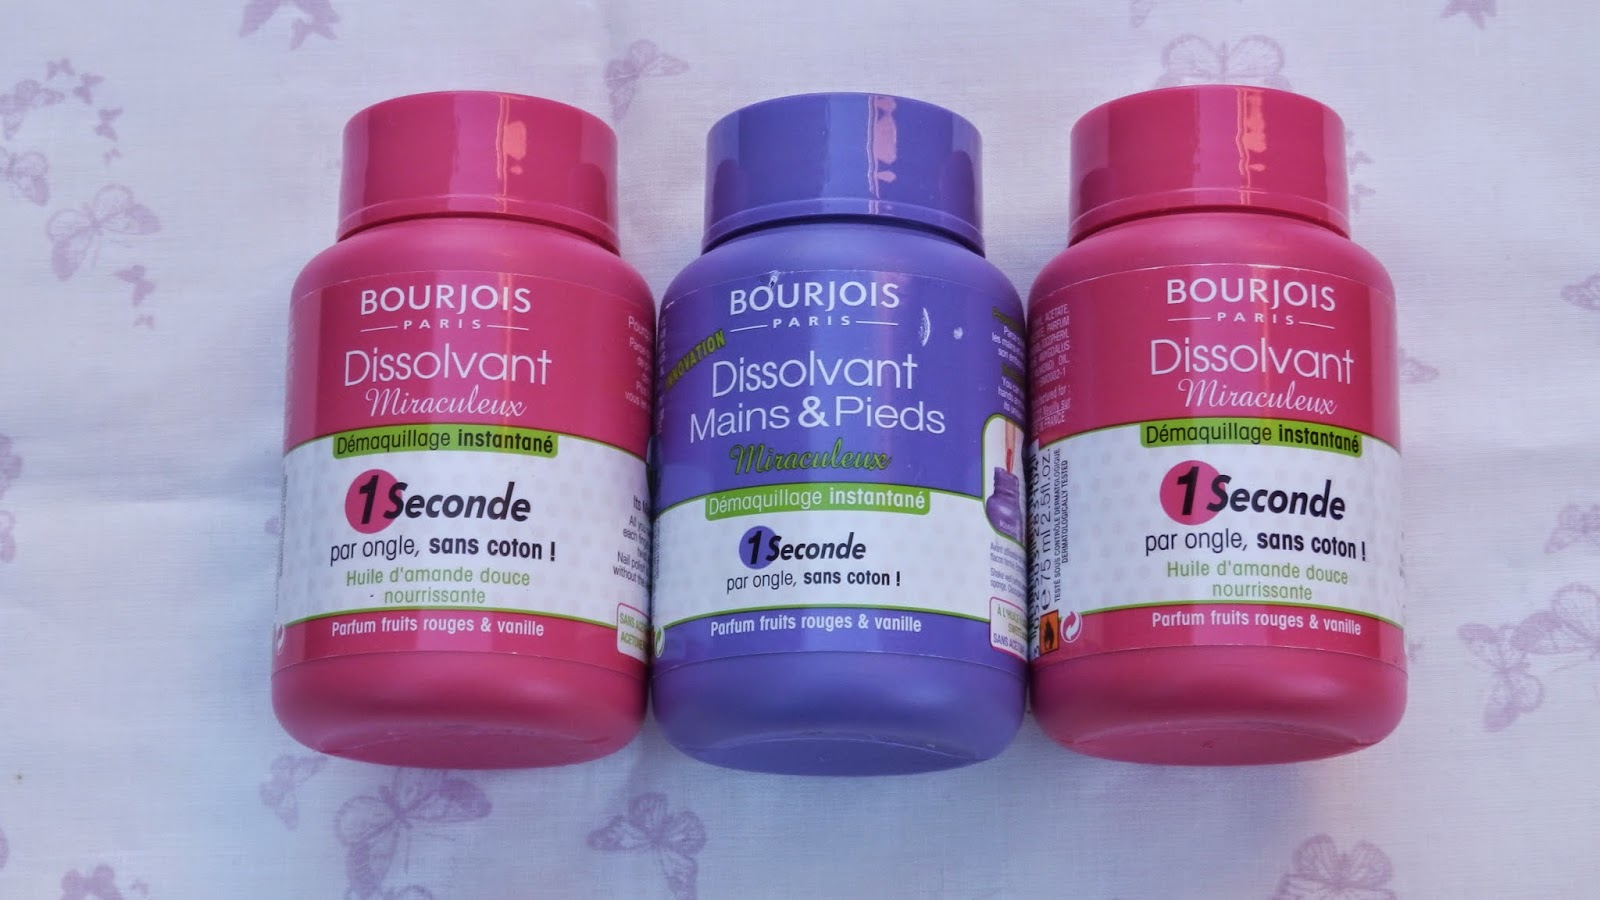 Bourjois Nail Polish Removers